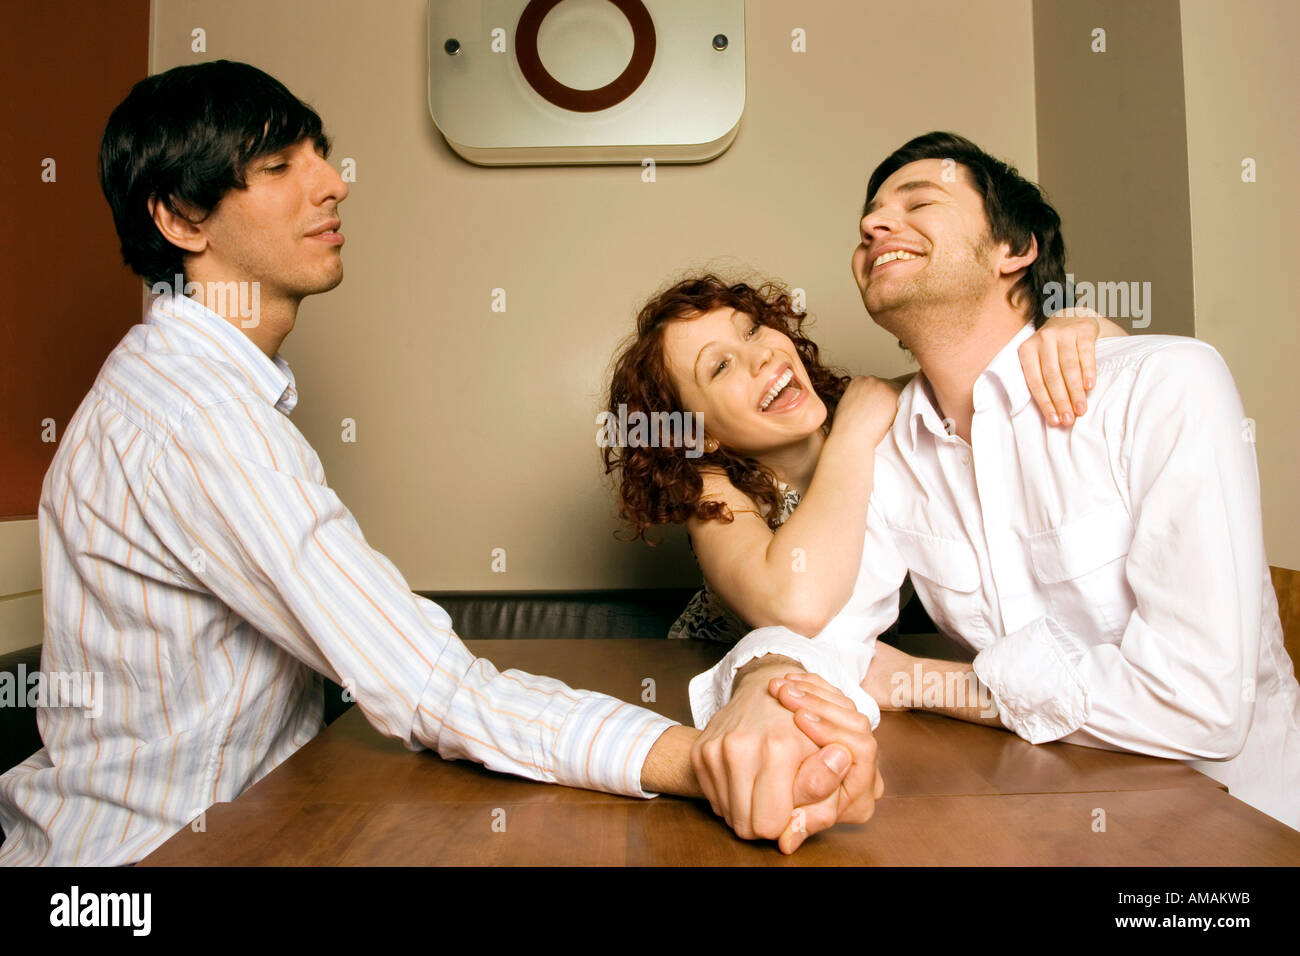 women watching men arm wrestling smiling stock photo royalty stock photo women watching men arm wrestling smiling